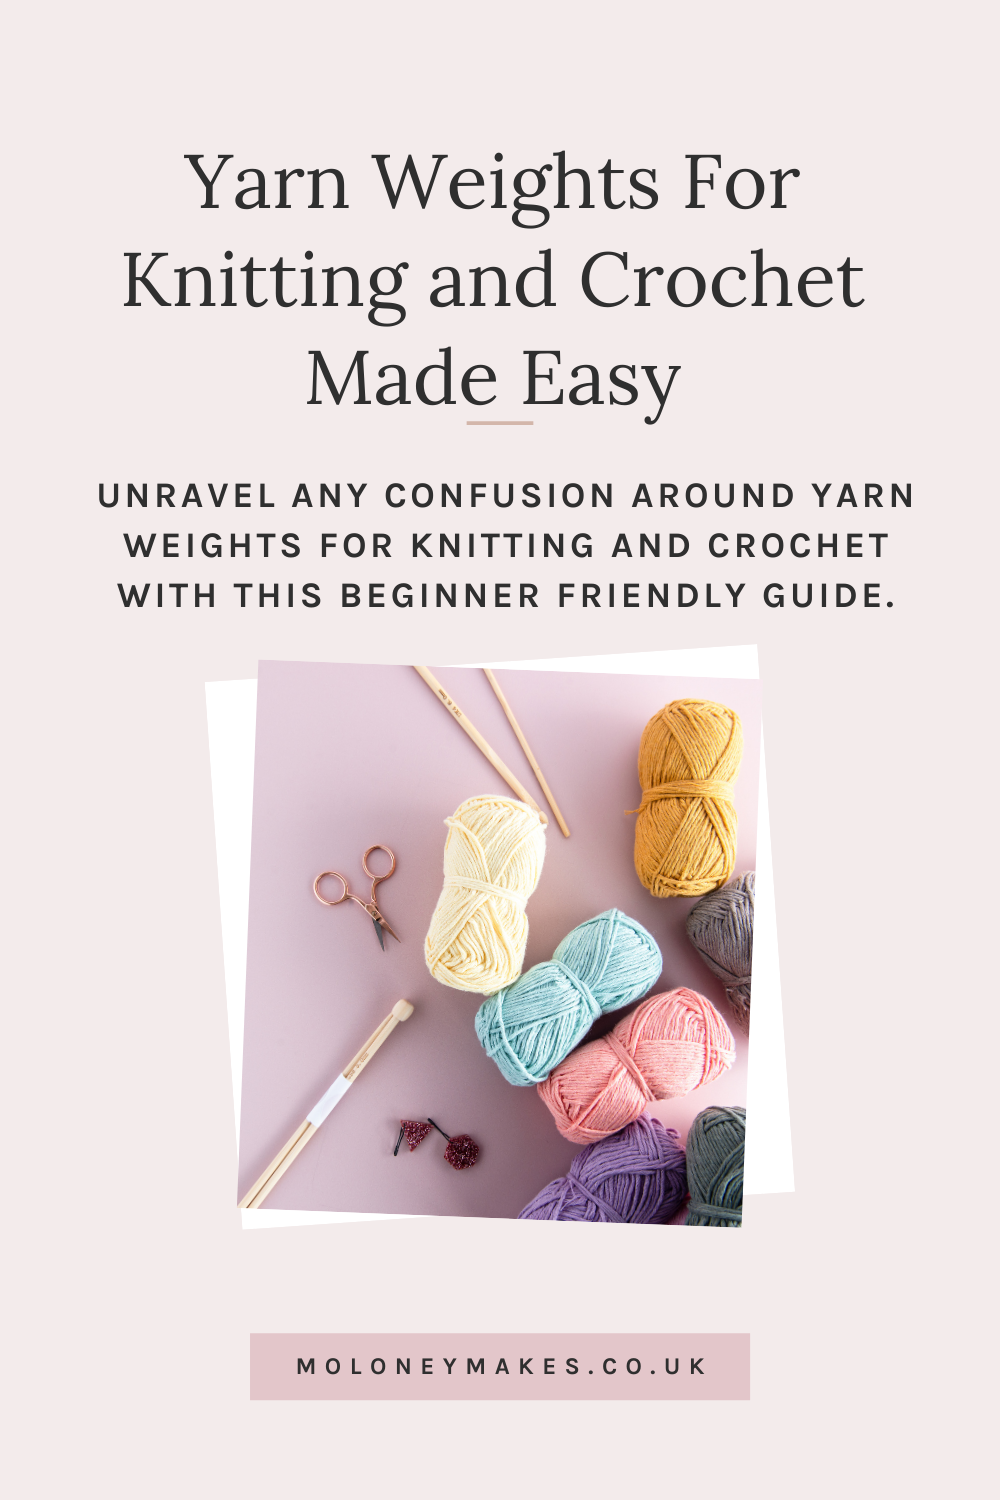 Yarn Weights For Knitting And Crochet Made Easy Blog Pinterest Graphic